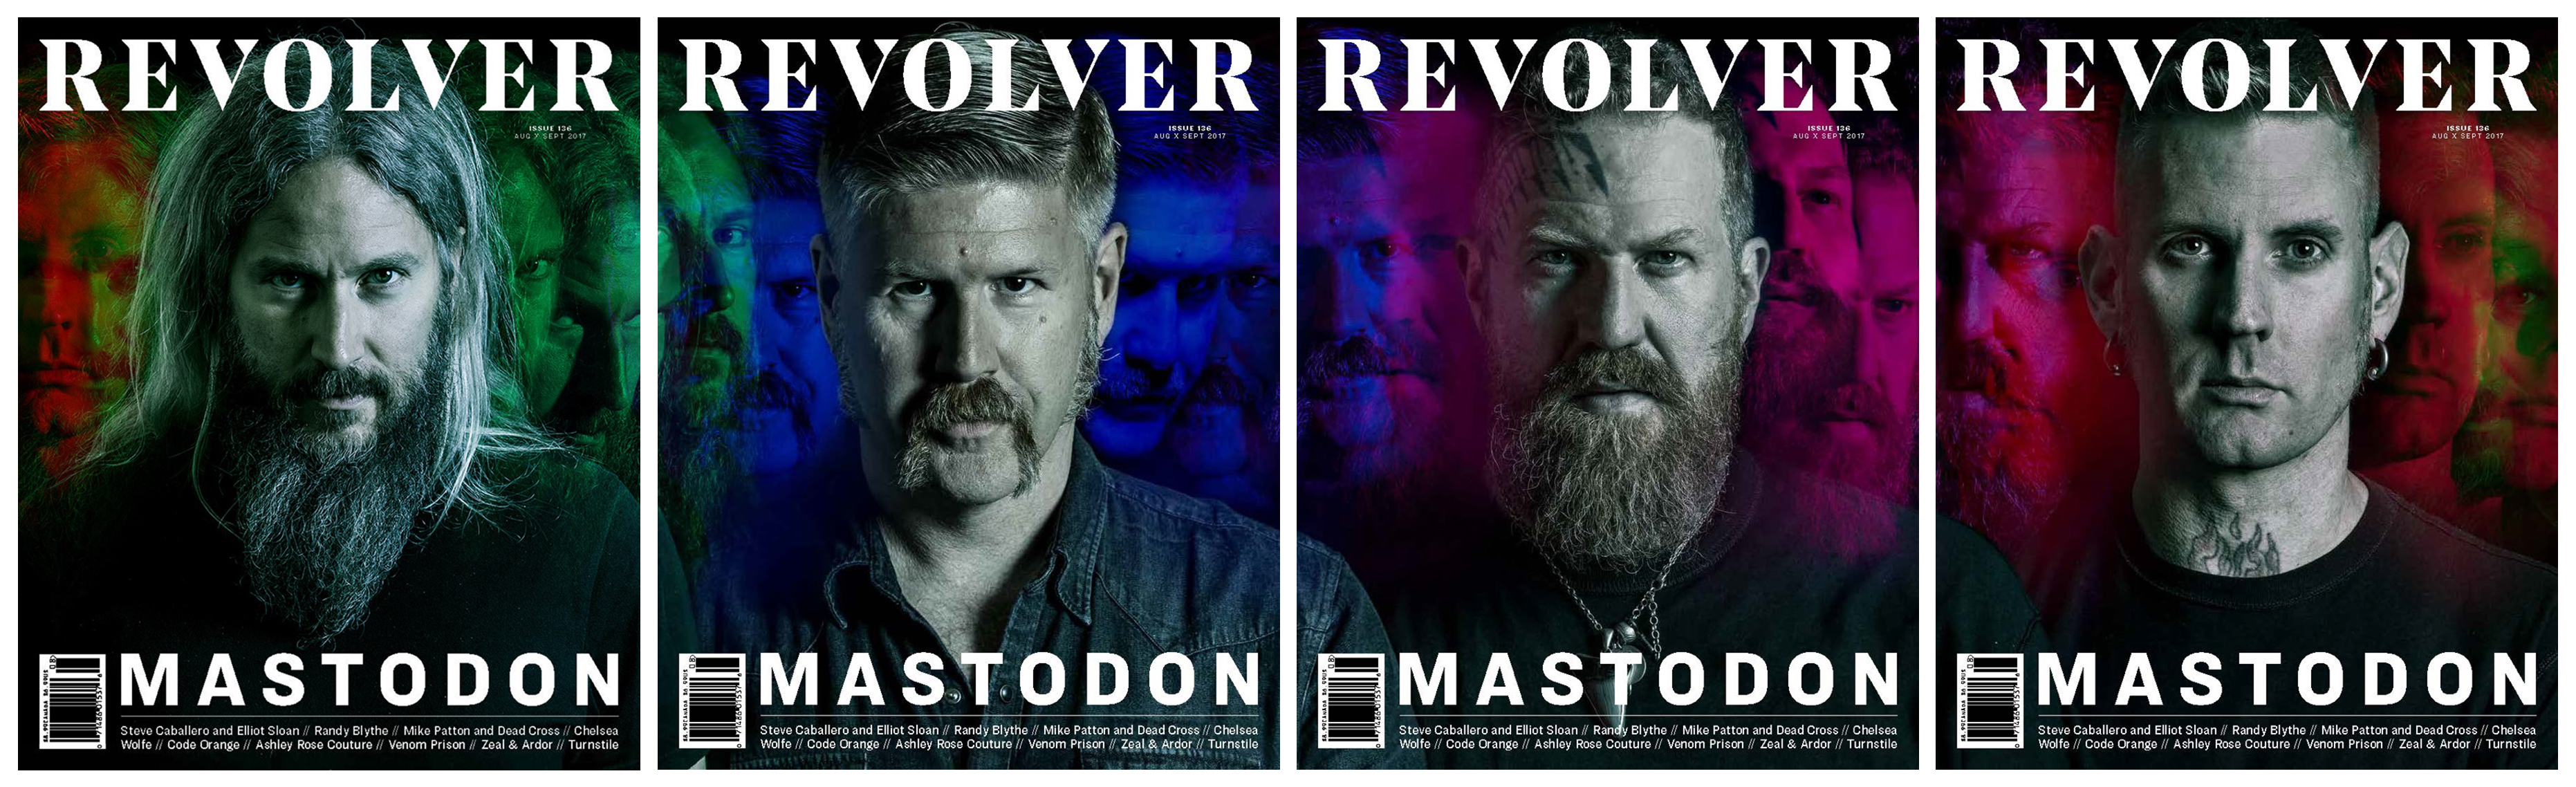 Mastodon_Revolver_Cover_Final